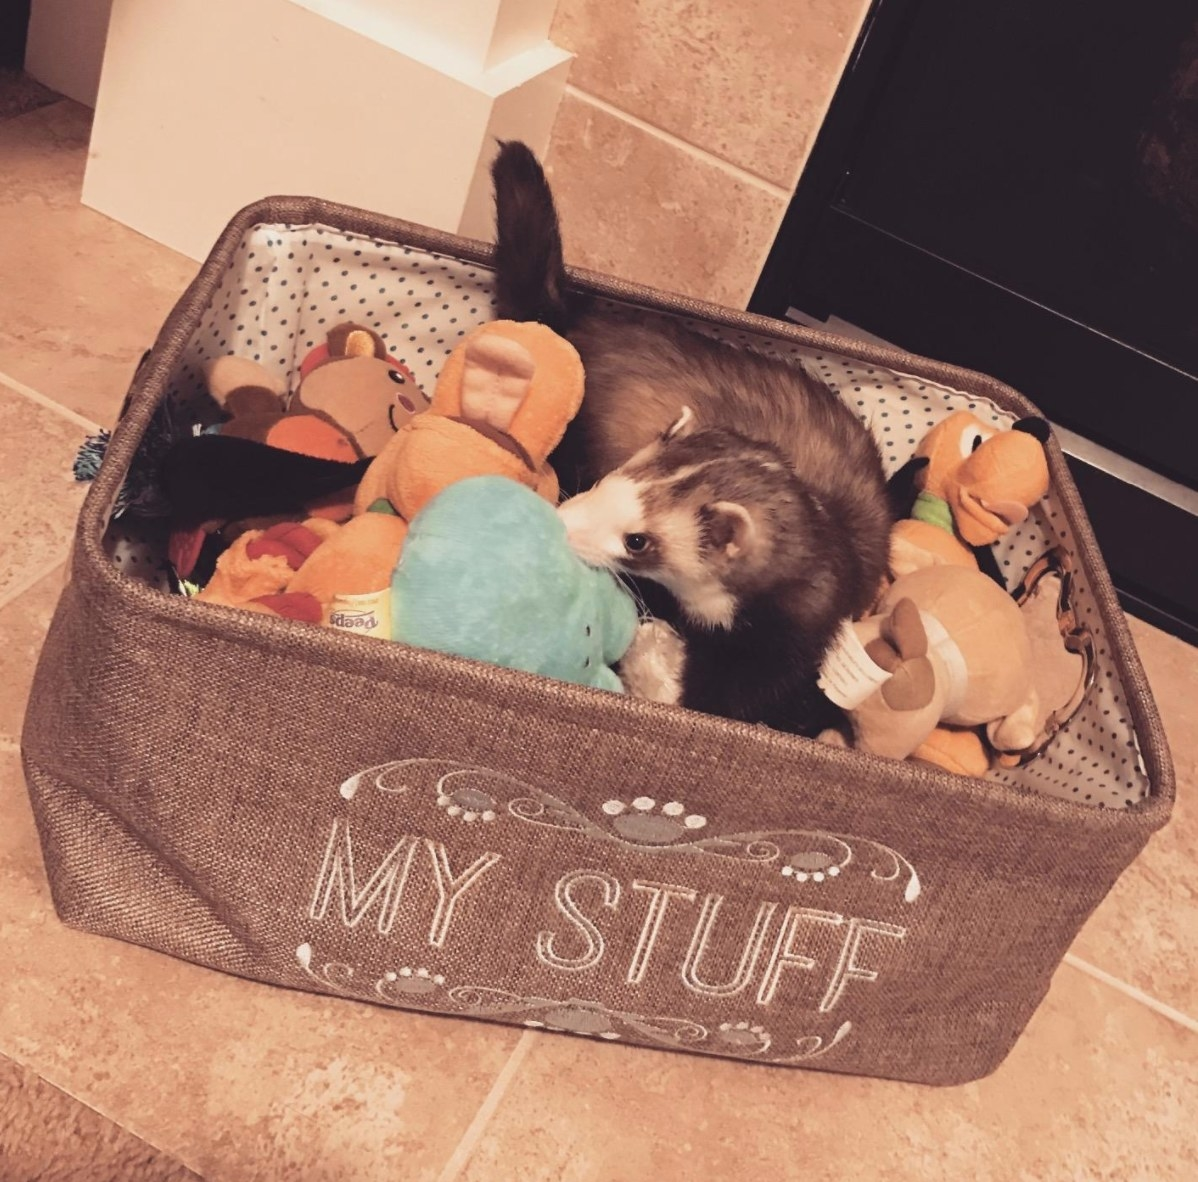 Reviewer's image of the toy bin